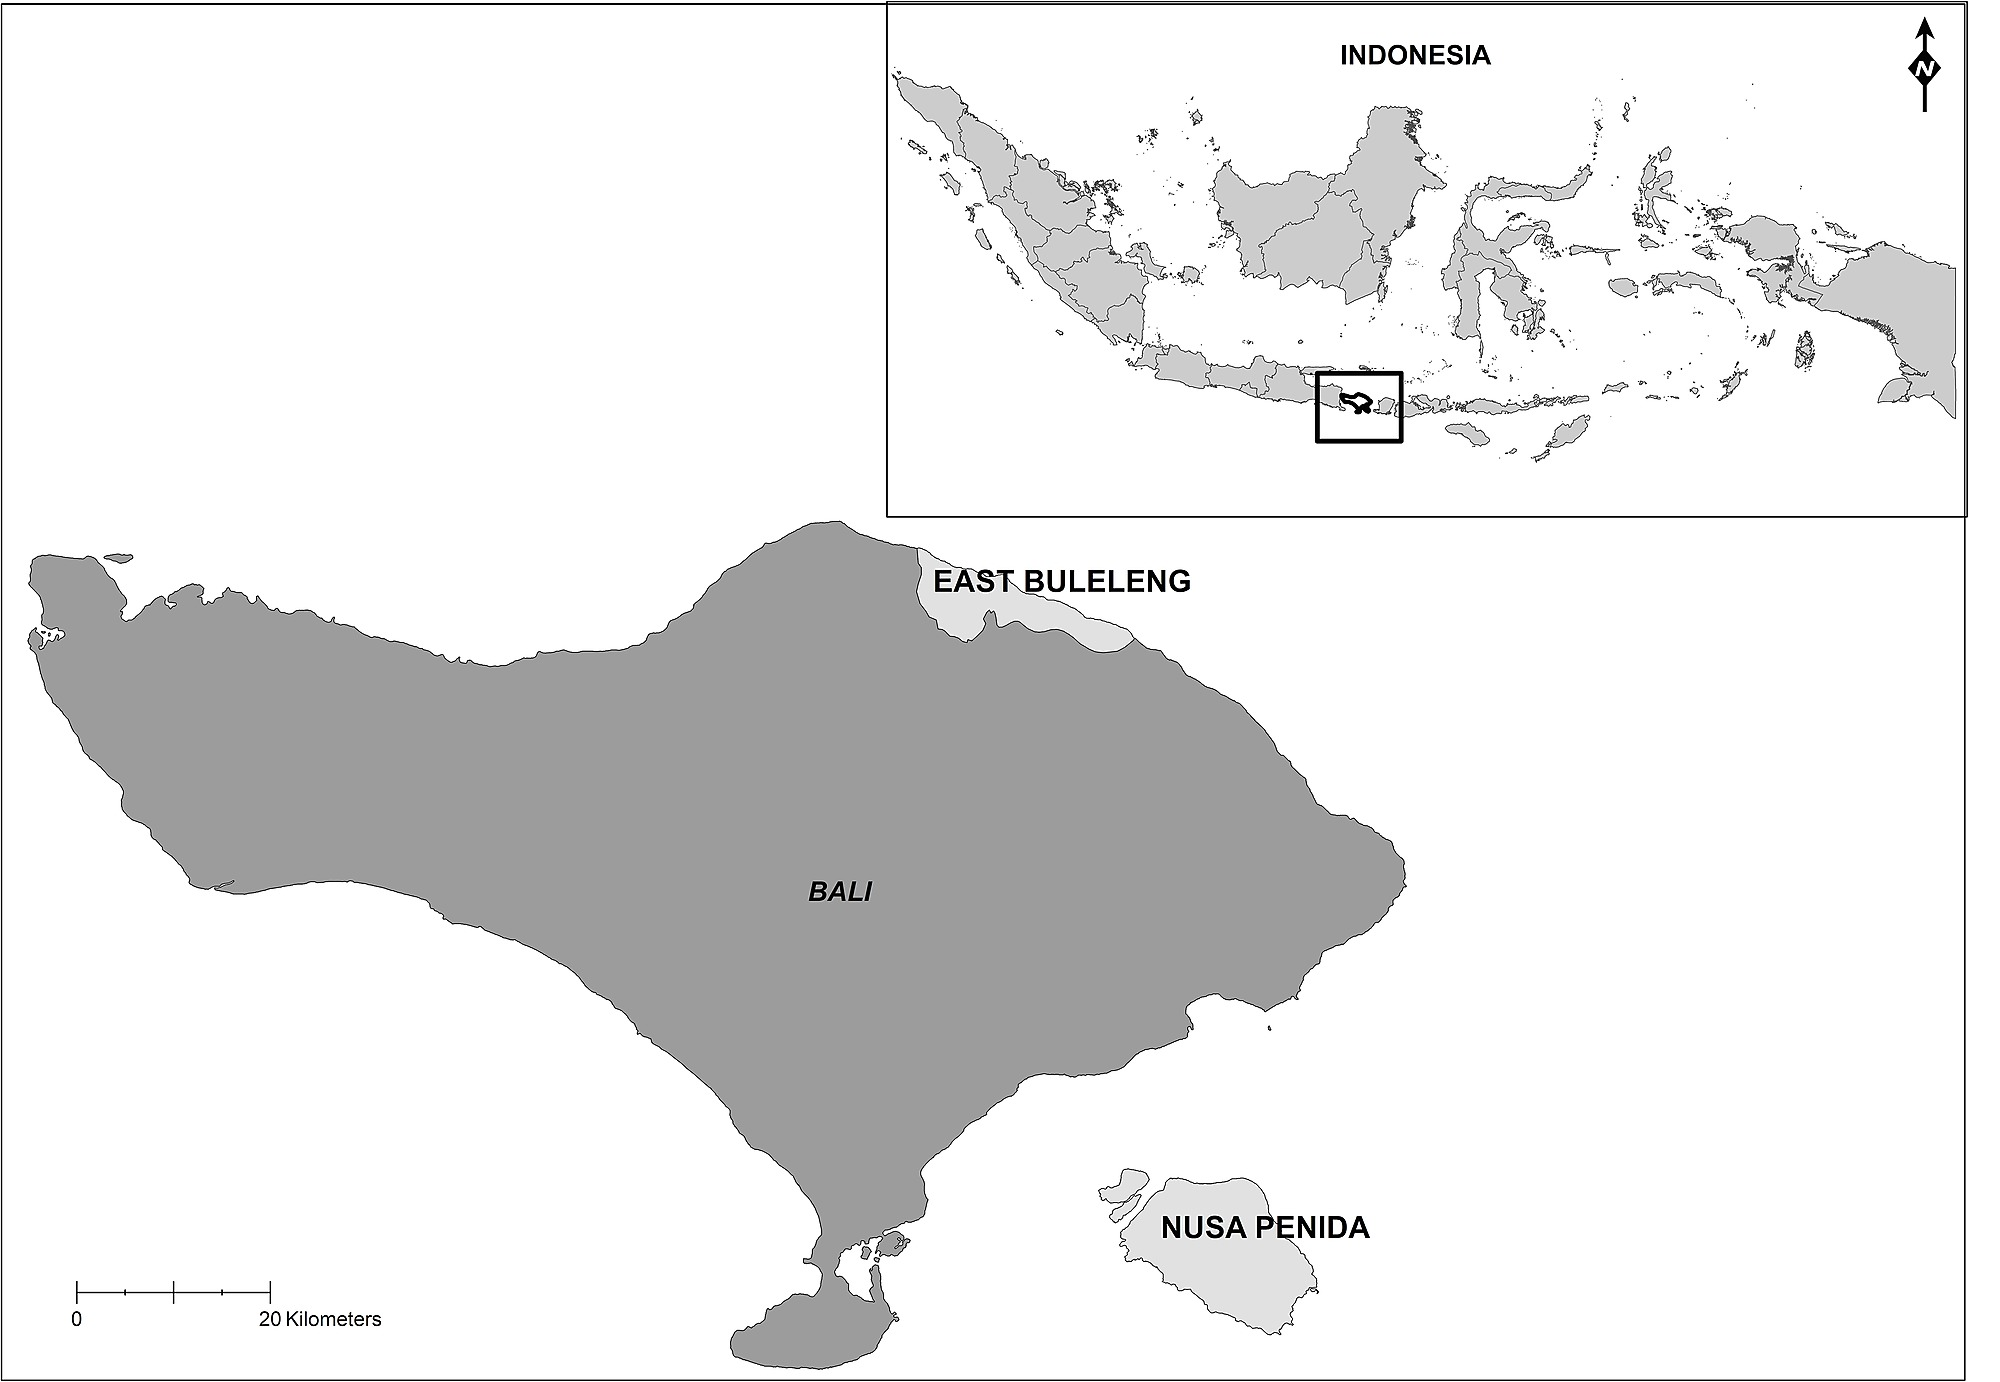 Map Of Bali Indonesia Showing The Two Research Locations